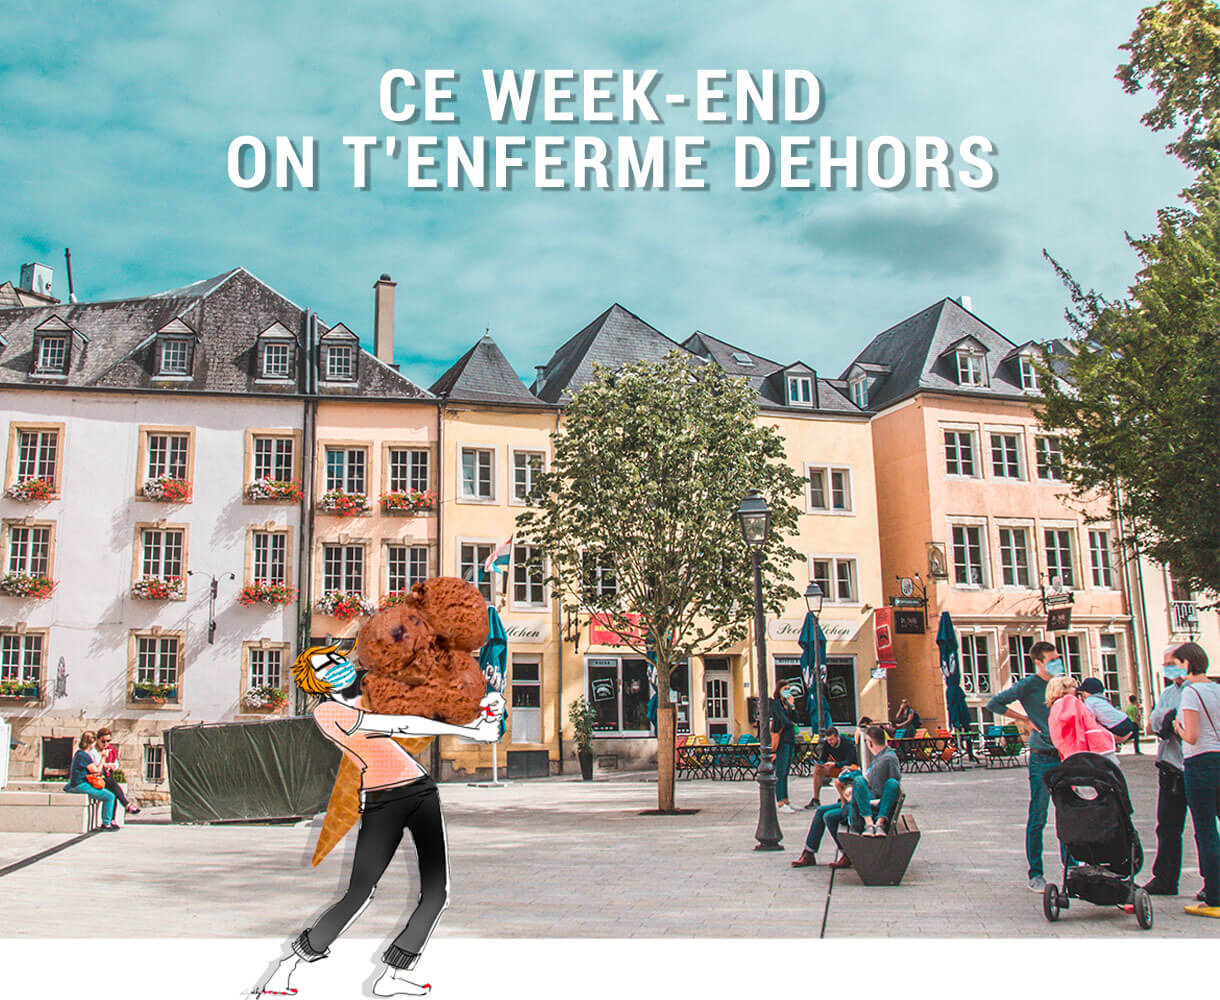 Ce week-end on t'enferme dehors ! ☀️